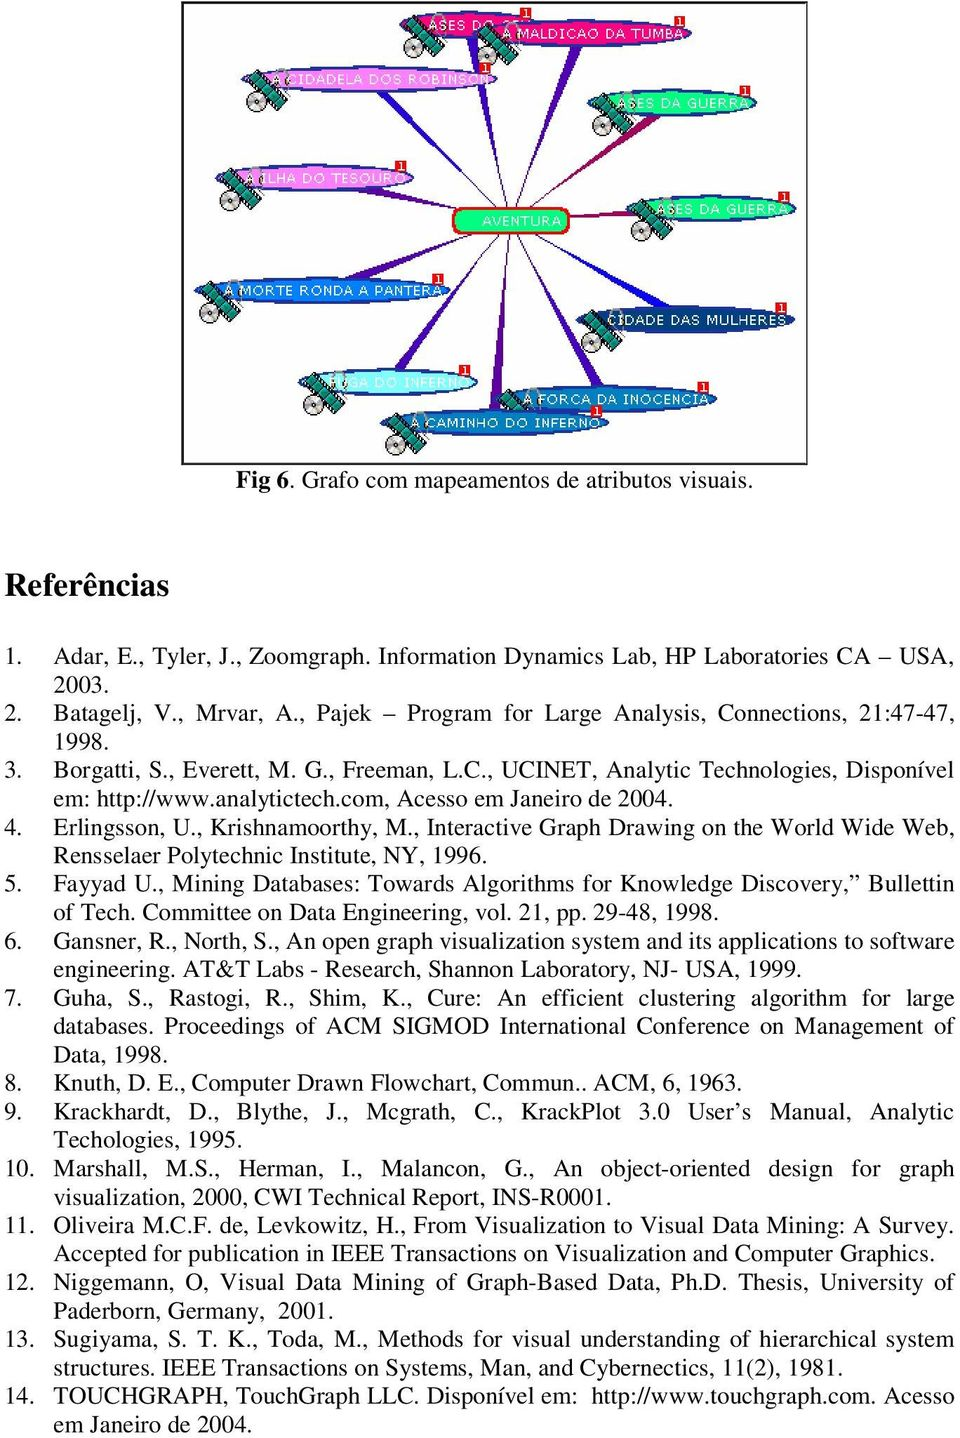 com, Acesso em Janeiro de 2004. 4. Erlingsson, U., Krishnamoorthy, M., Interactive Graph Drawing on the World Wide Web, Rensselaer Polytechnic Institute, NY, 1996. 5. Fayyad U.